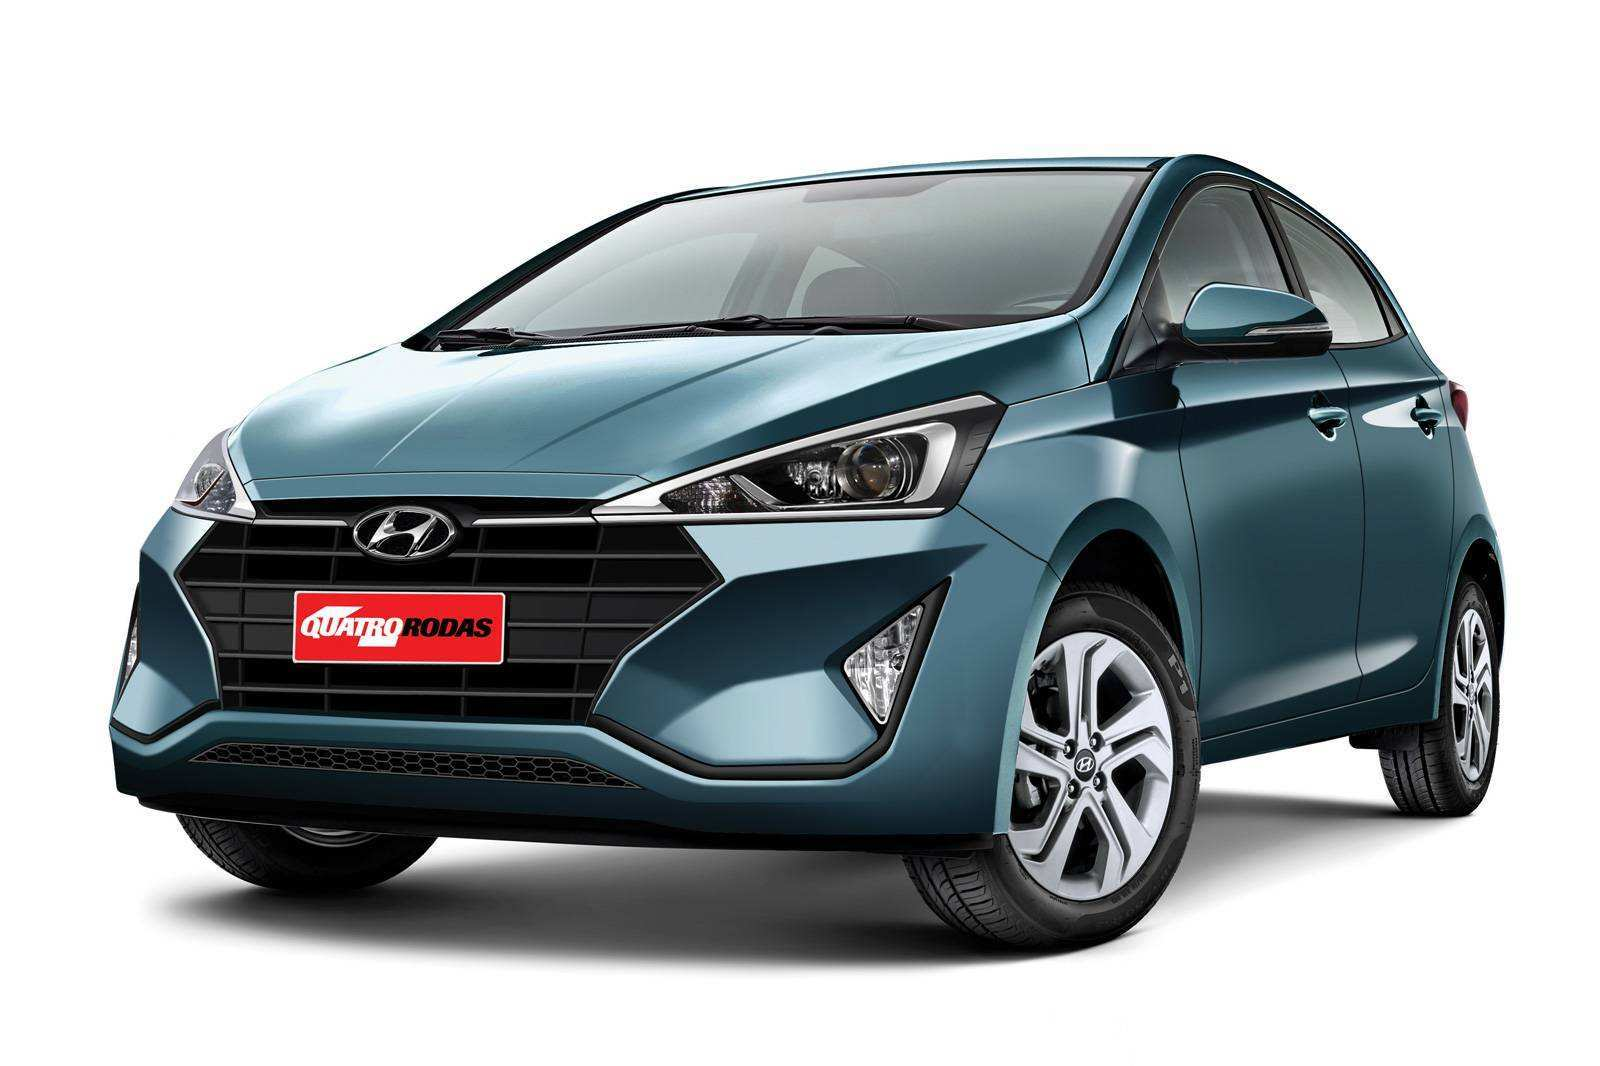 79 All New Hyundai Hb20 2020 Prices